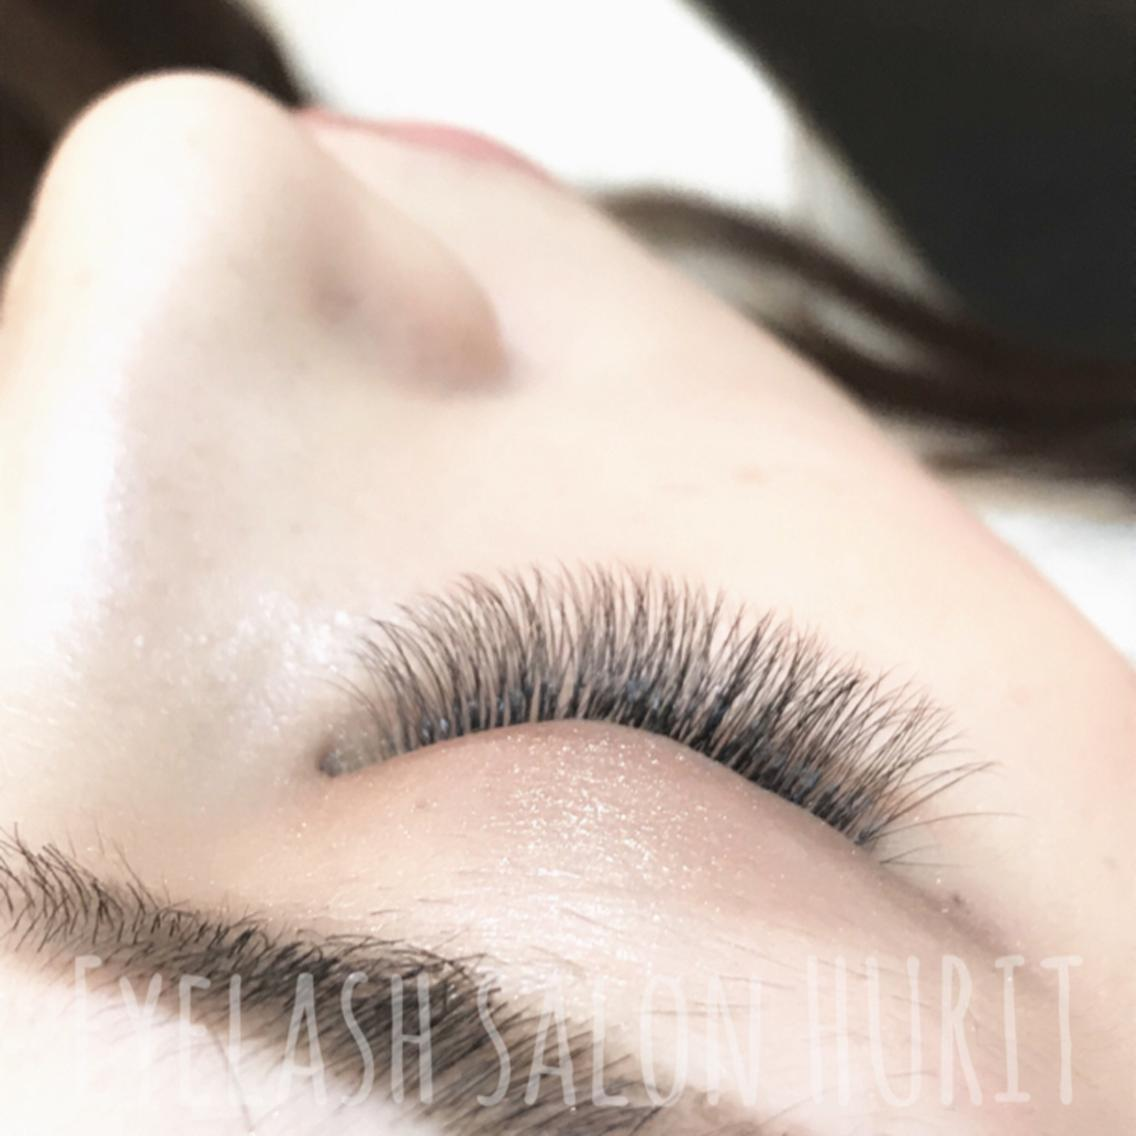 eyelash salon HURIT所属・eyelashHURITの掲載